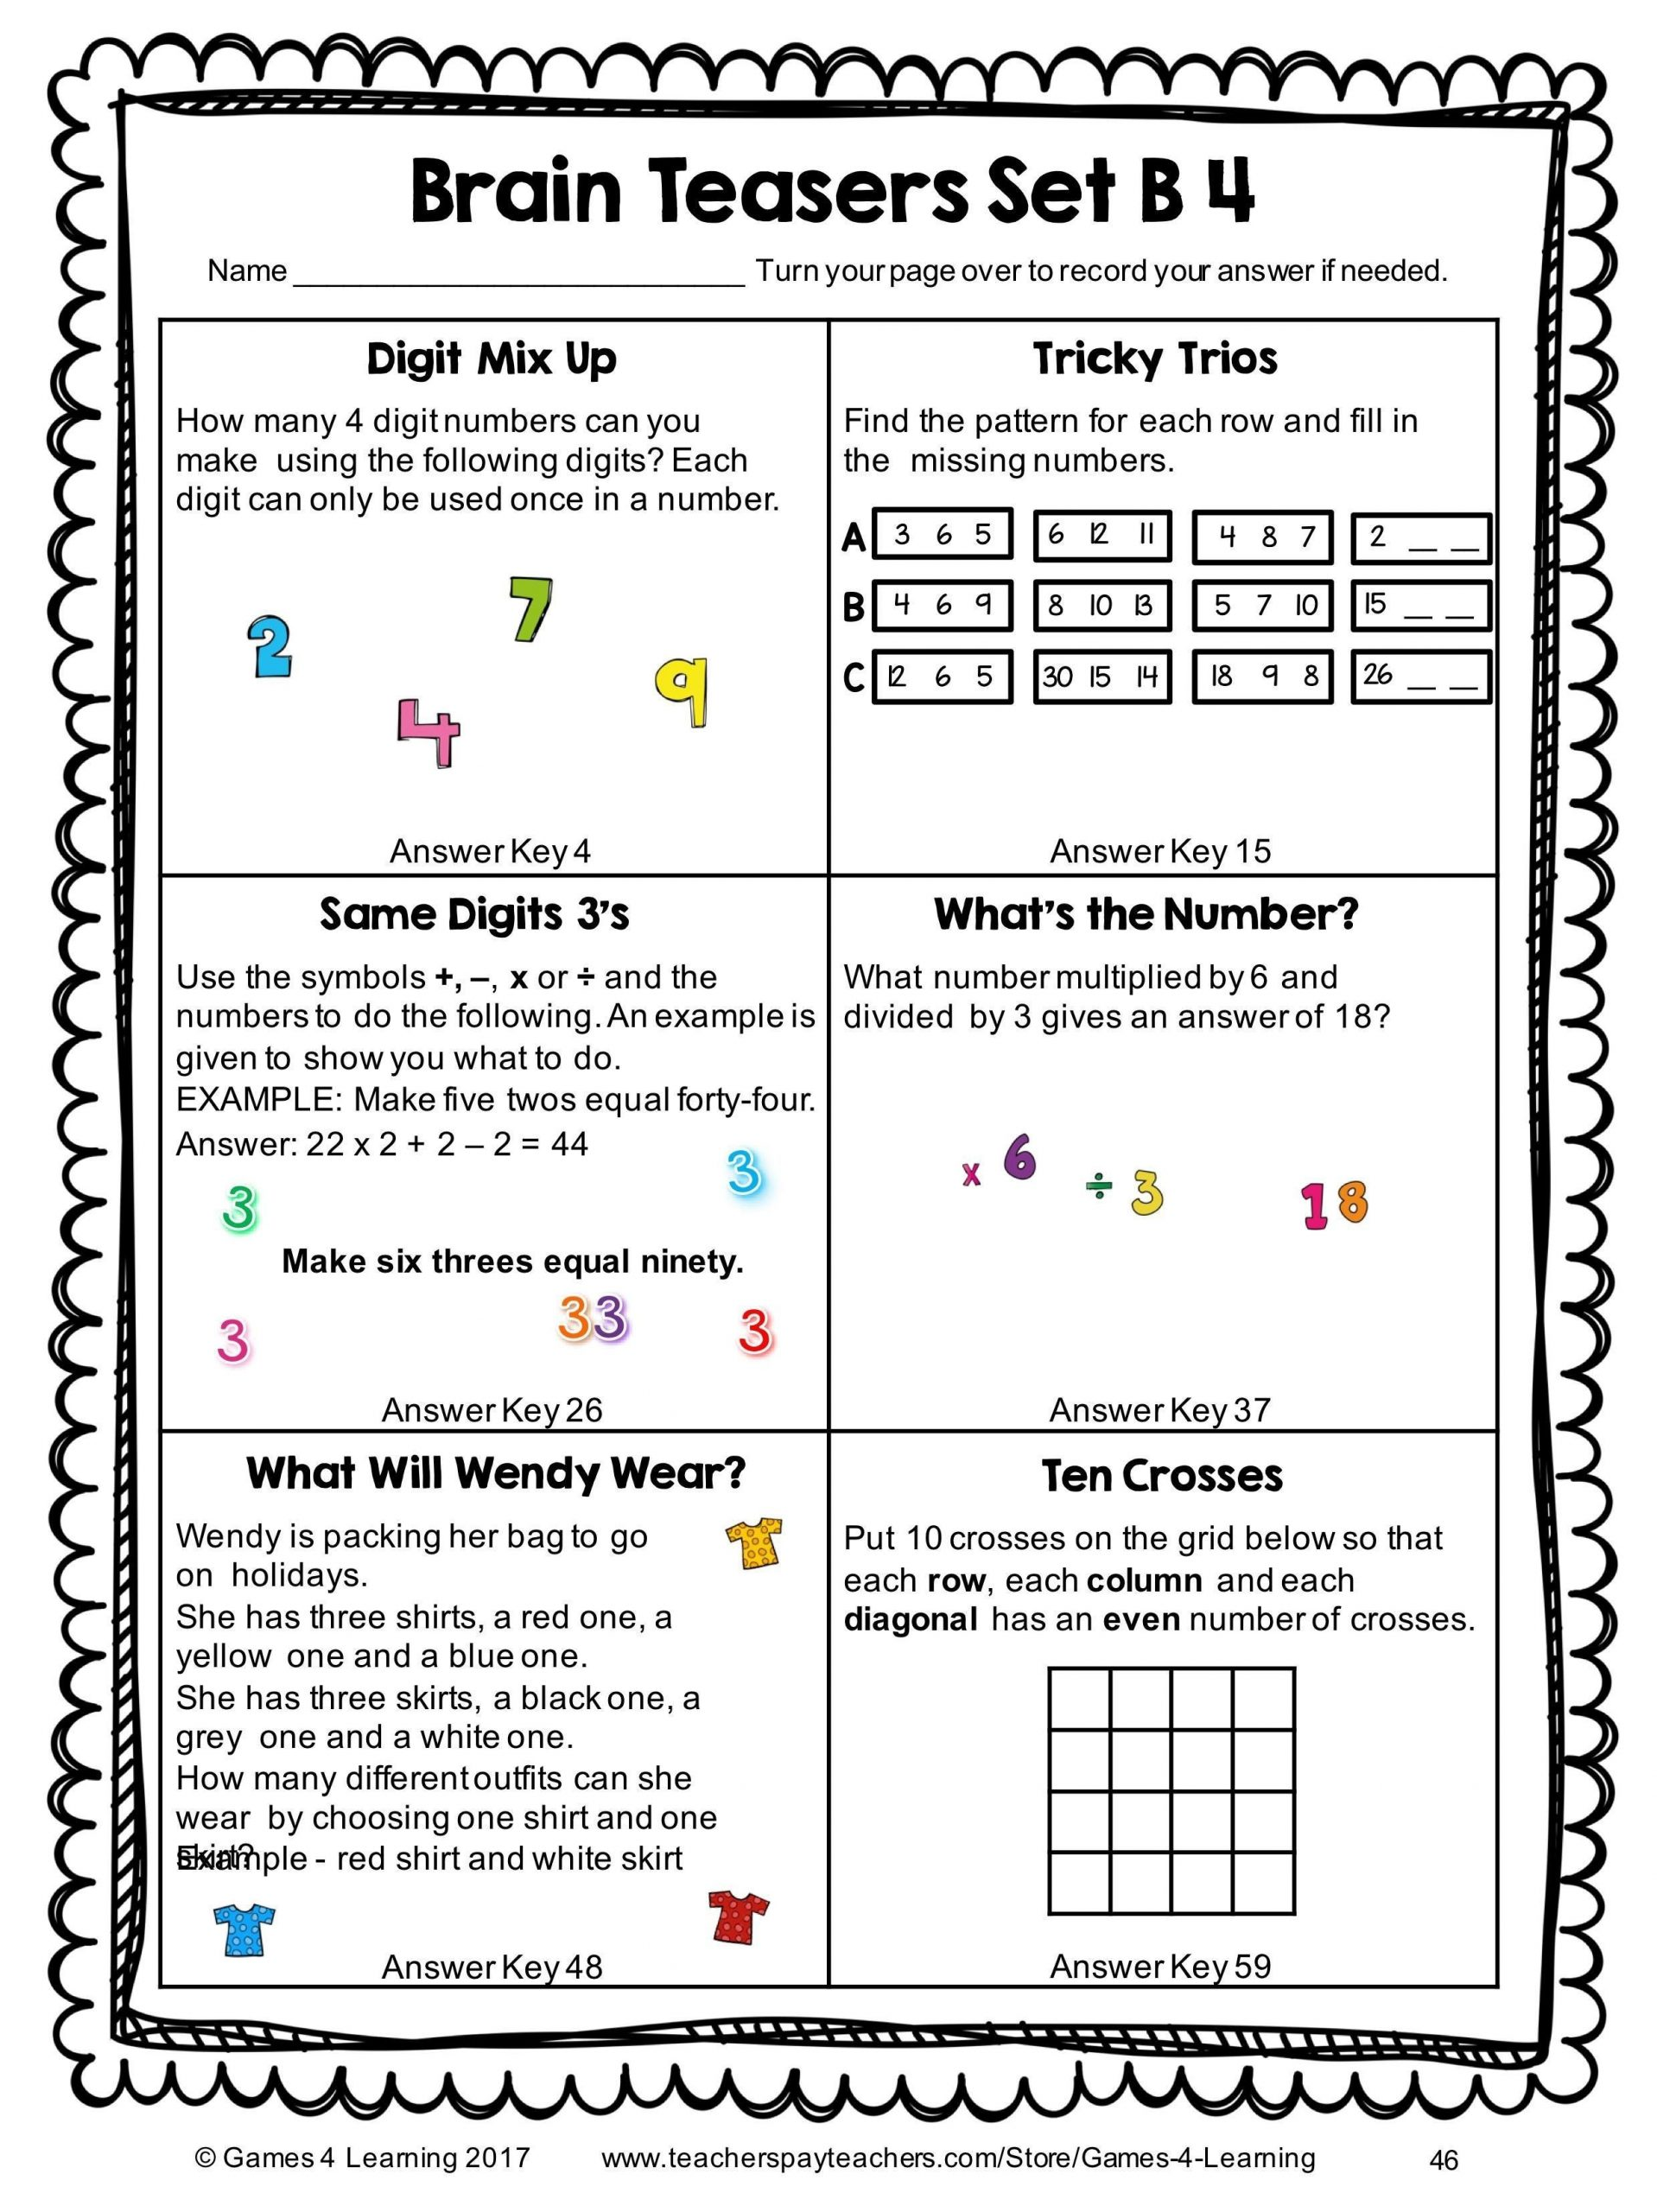 Brain Teaser Worksheets Middle School Brain Teaser Worksheets for Kids